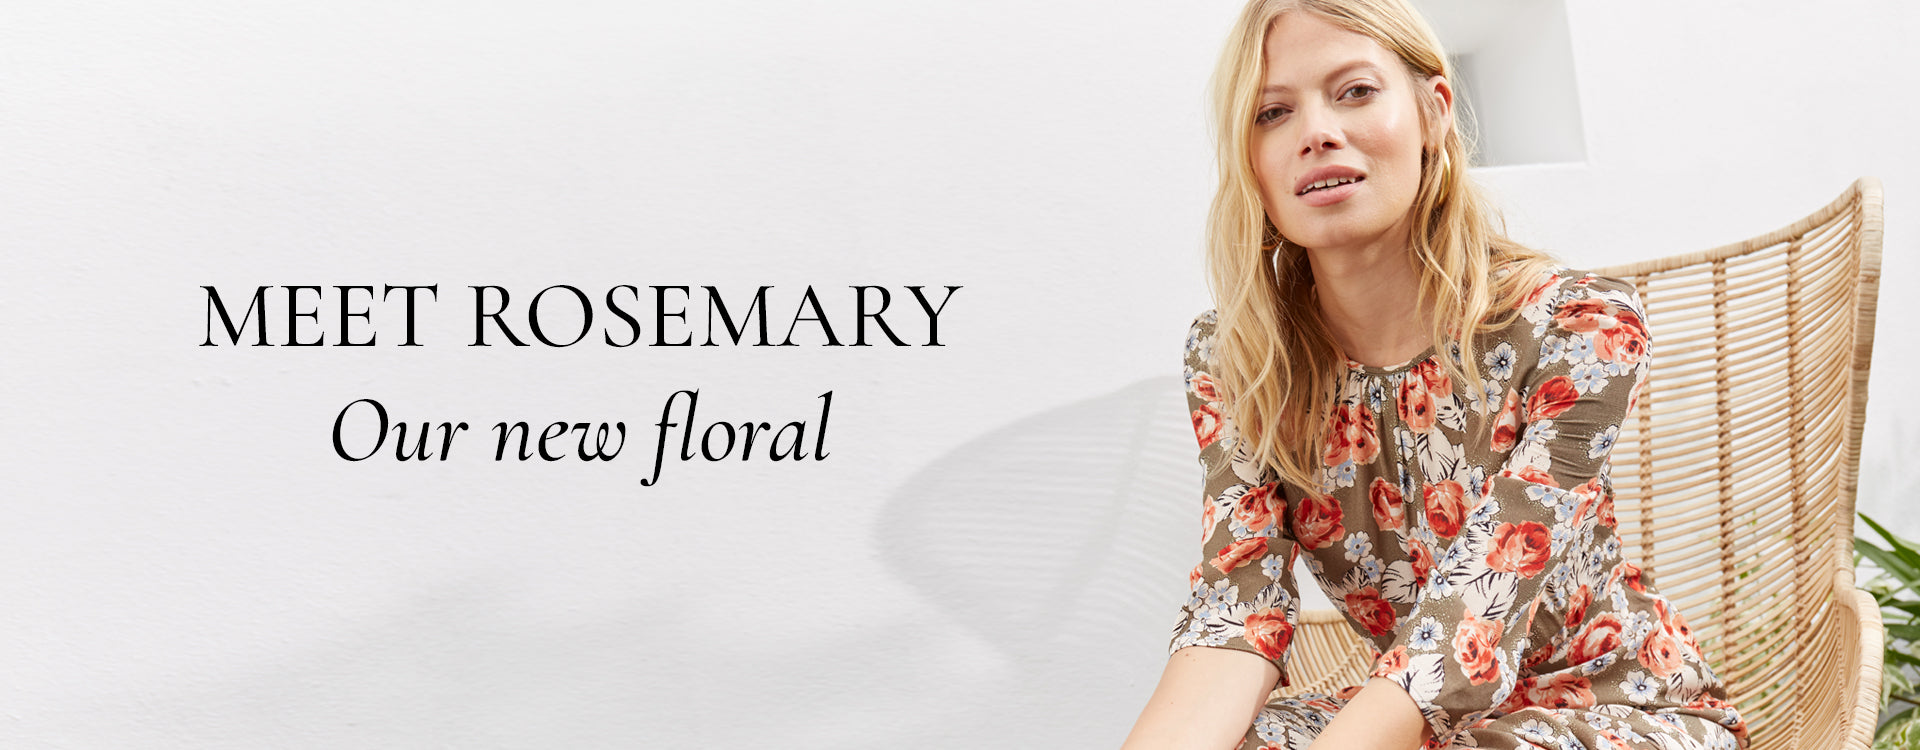 Meet Rosemary - our new floral